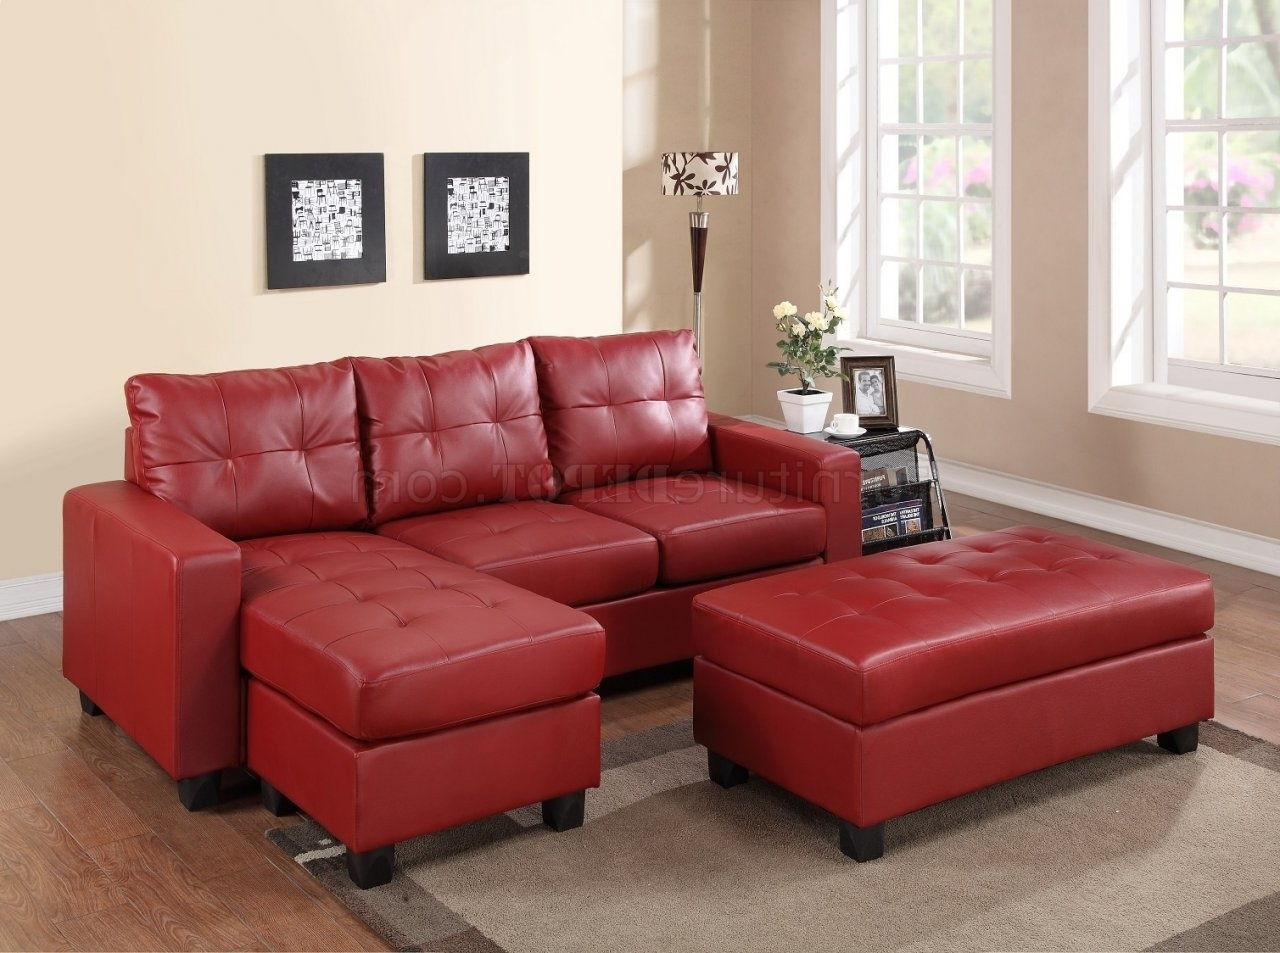 2511 Sectional Sofa Set In Red Bonded Leather Match Pu Throughout Well Known Red Leather Sectional Couches (View 2 of 20)